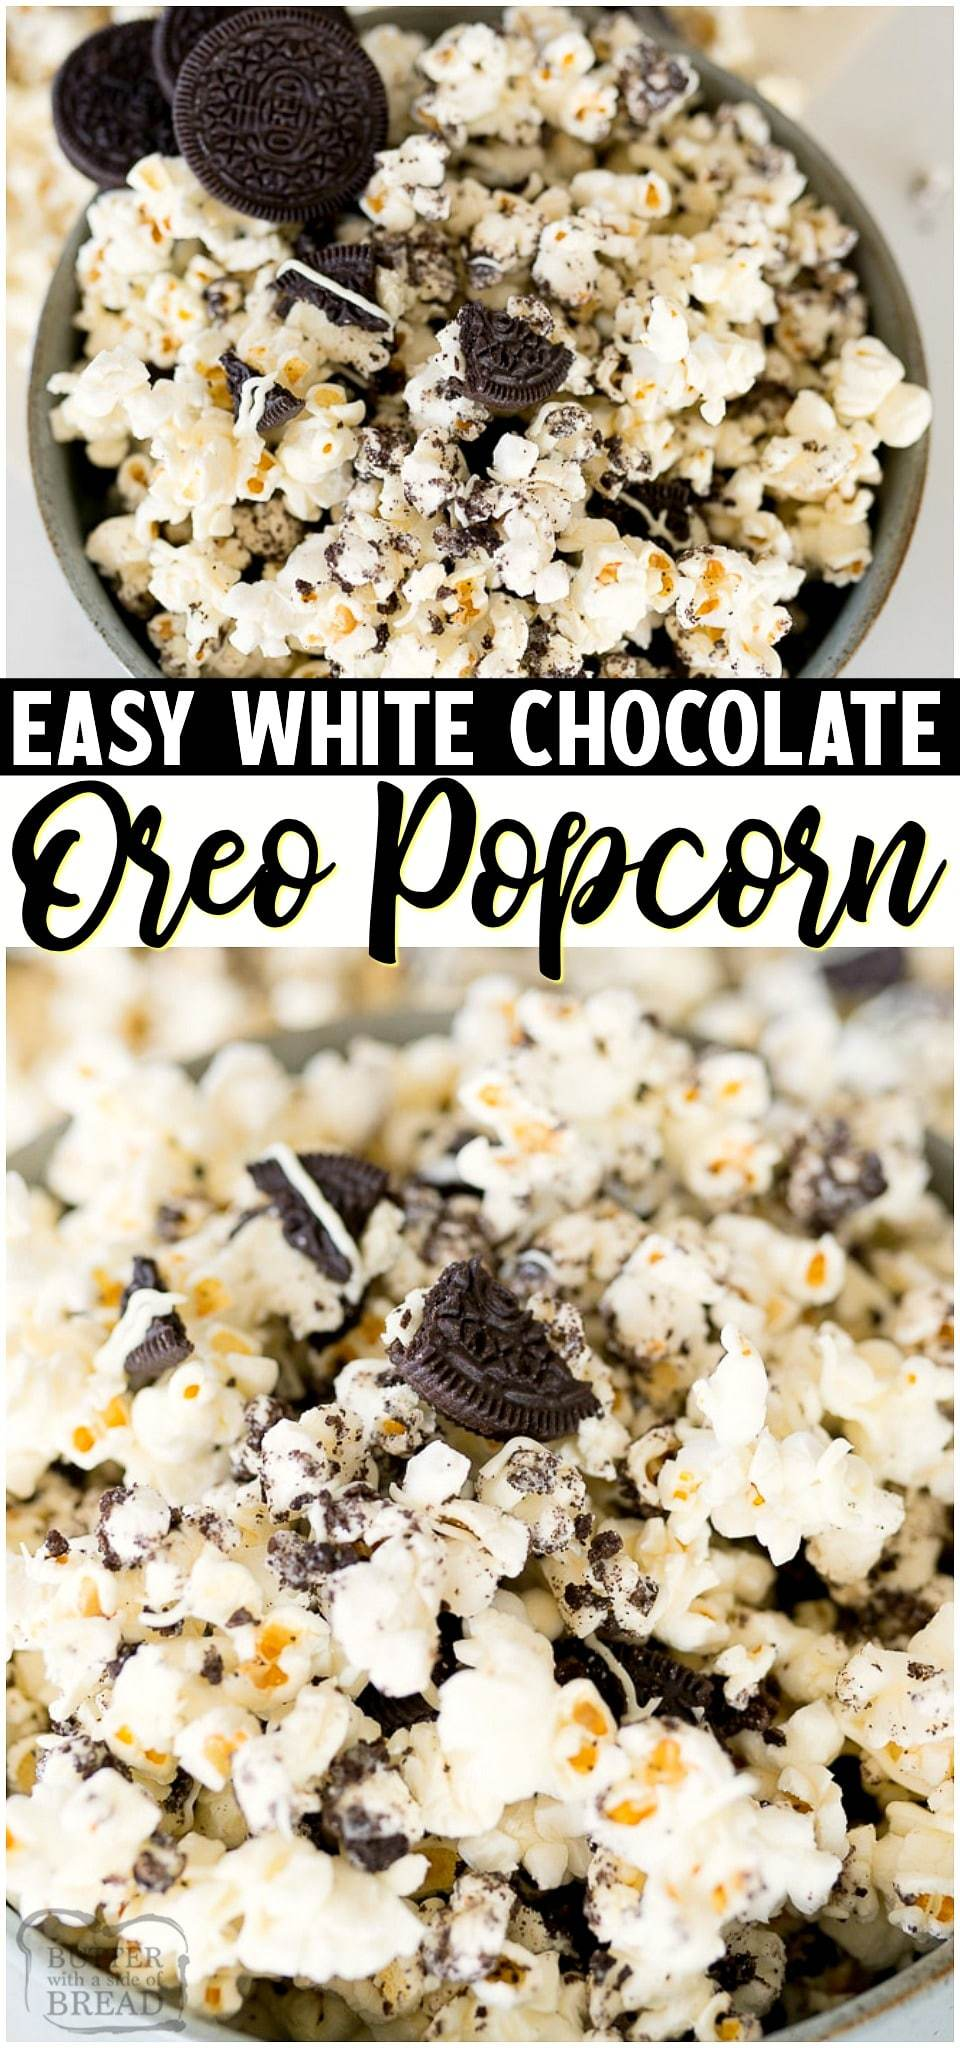 Easy OREO Popcorn is a dessert popcorn made in minutes with just 3 ingredients! Popcorn, white chocolate & Oreos combine for an amazing cookies & cream treat! It's a must-have dessert for Oreo lovers! #Oreo #Popcorn #Whitechocolate #Dessert #easyrecipe from BUTTER WITH A SIDE OF BREAD